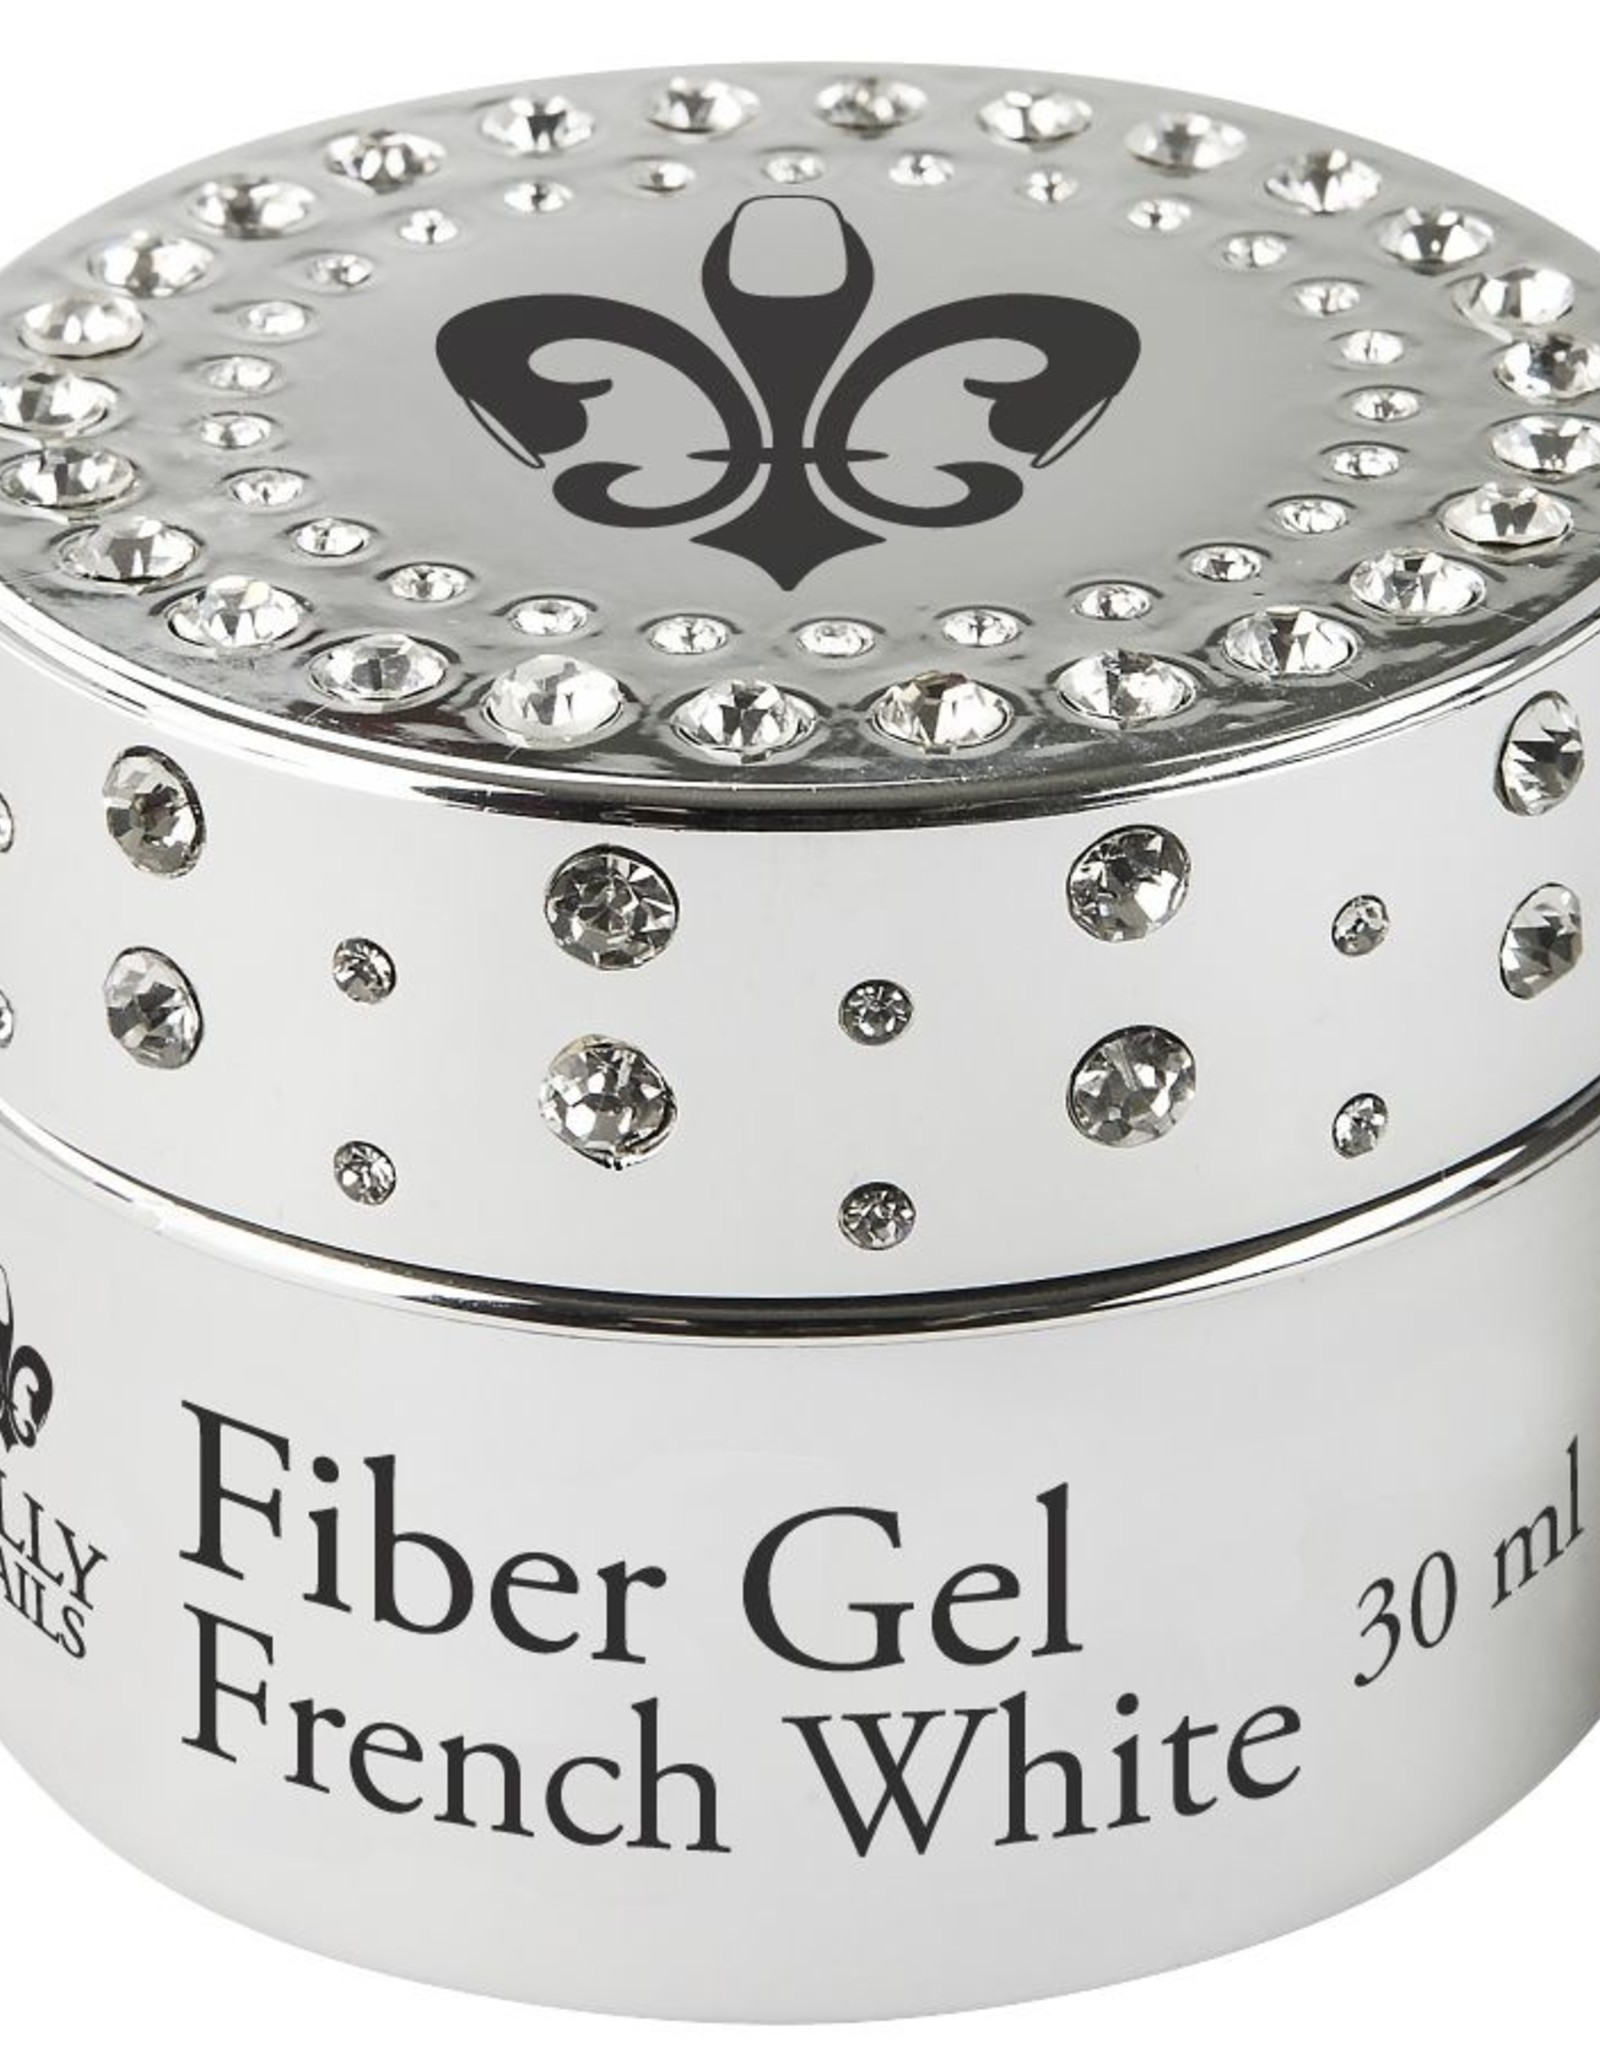 Gel Fiber French White